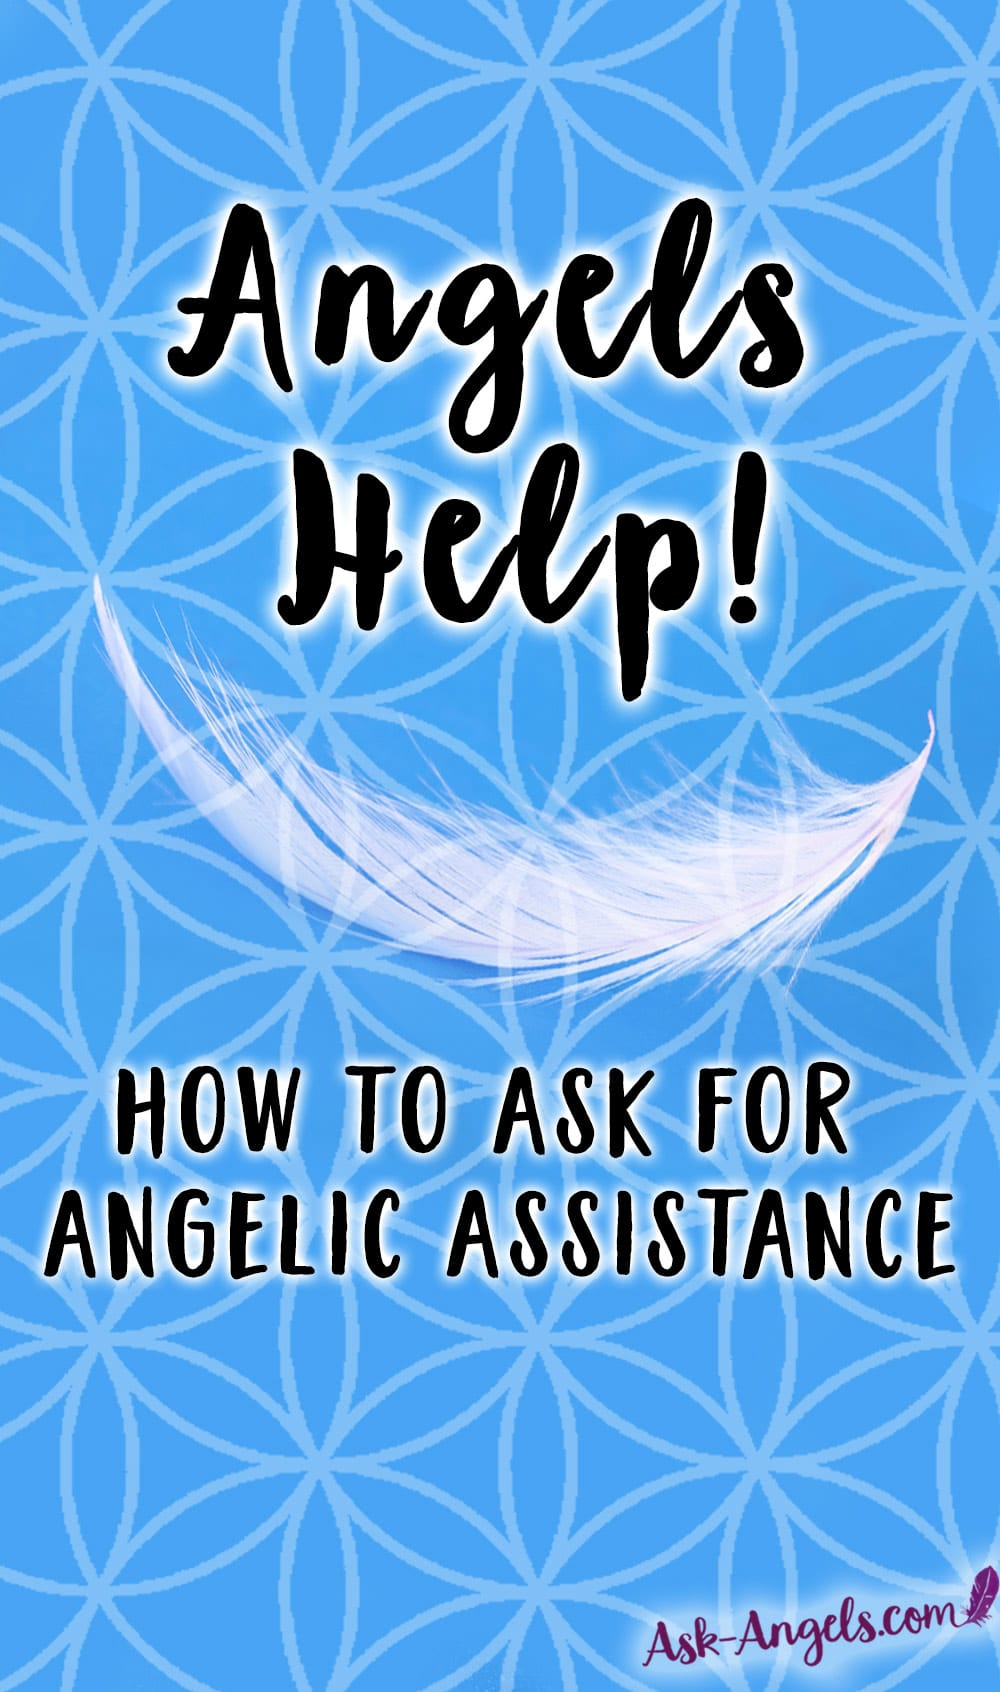 Spiritual guidance for invoking the Help of Angels with important tips and insight into how to ask for angelic help in your life.